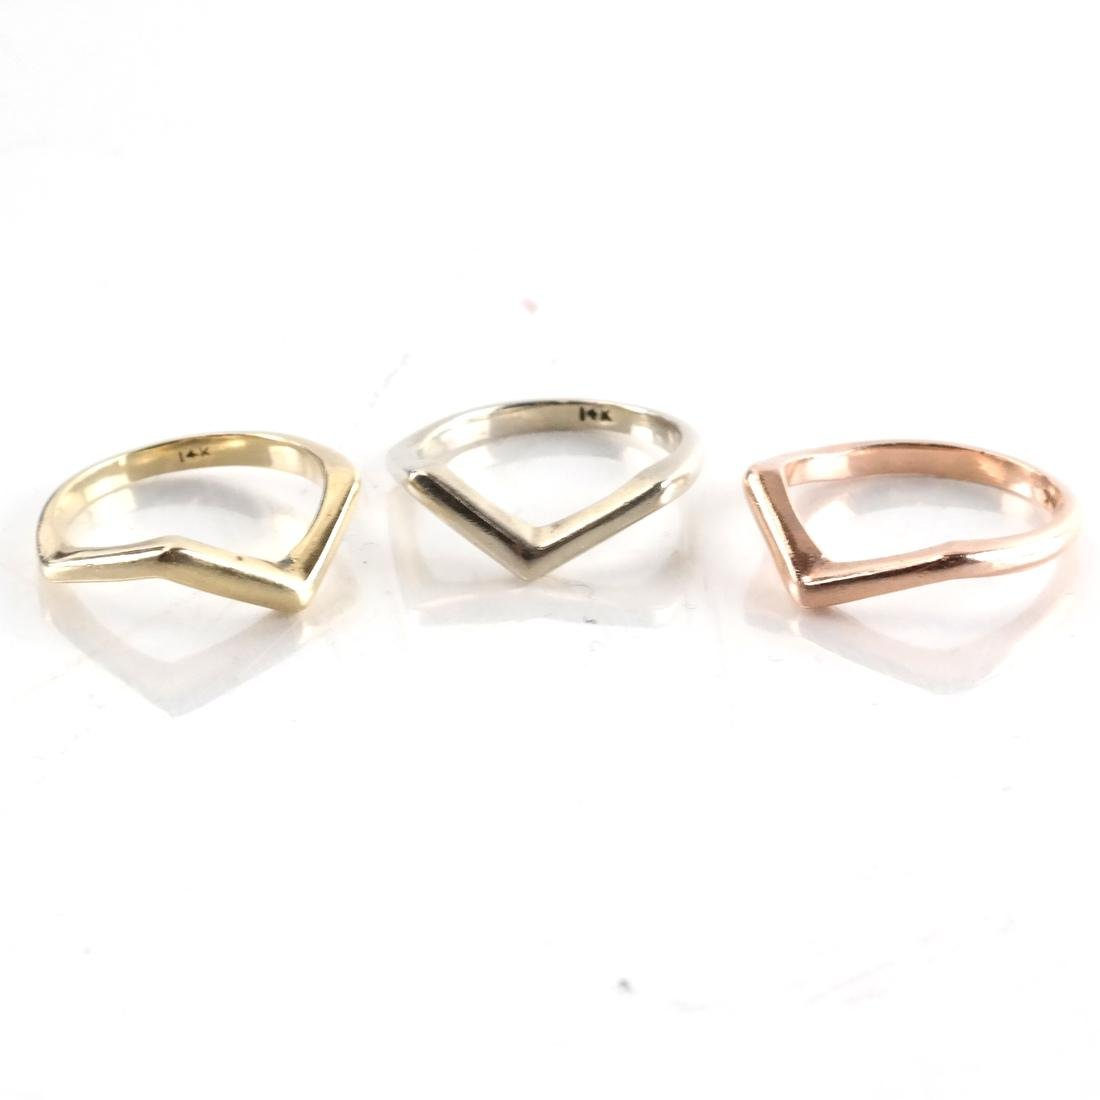 Three Tricolor Gold Rings